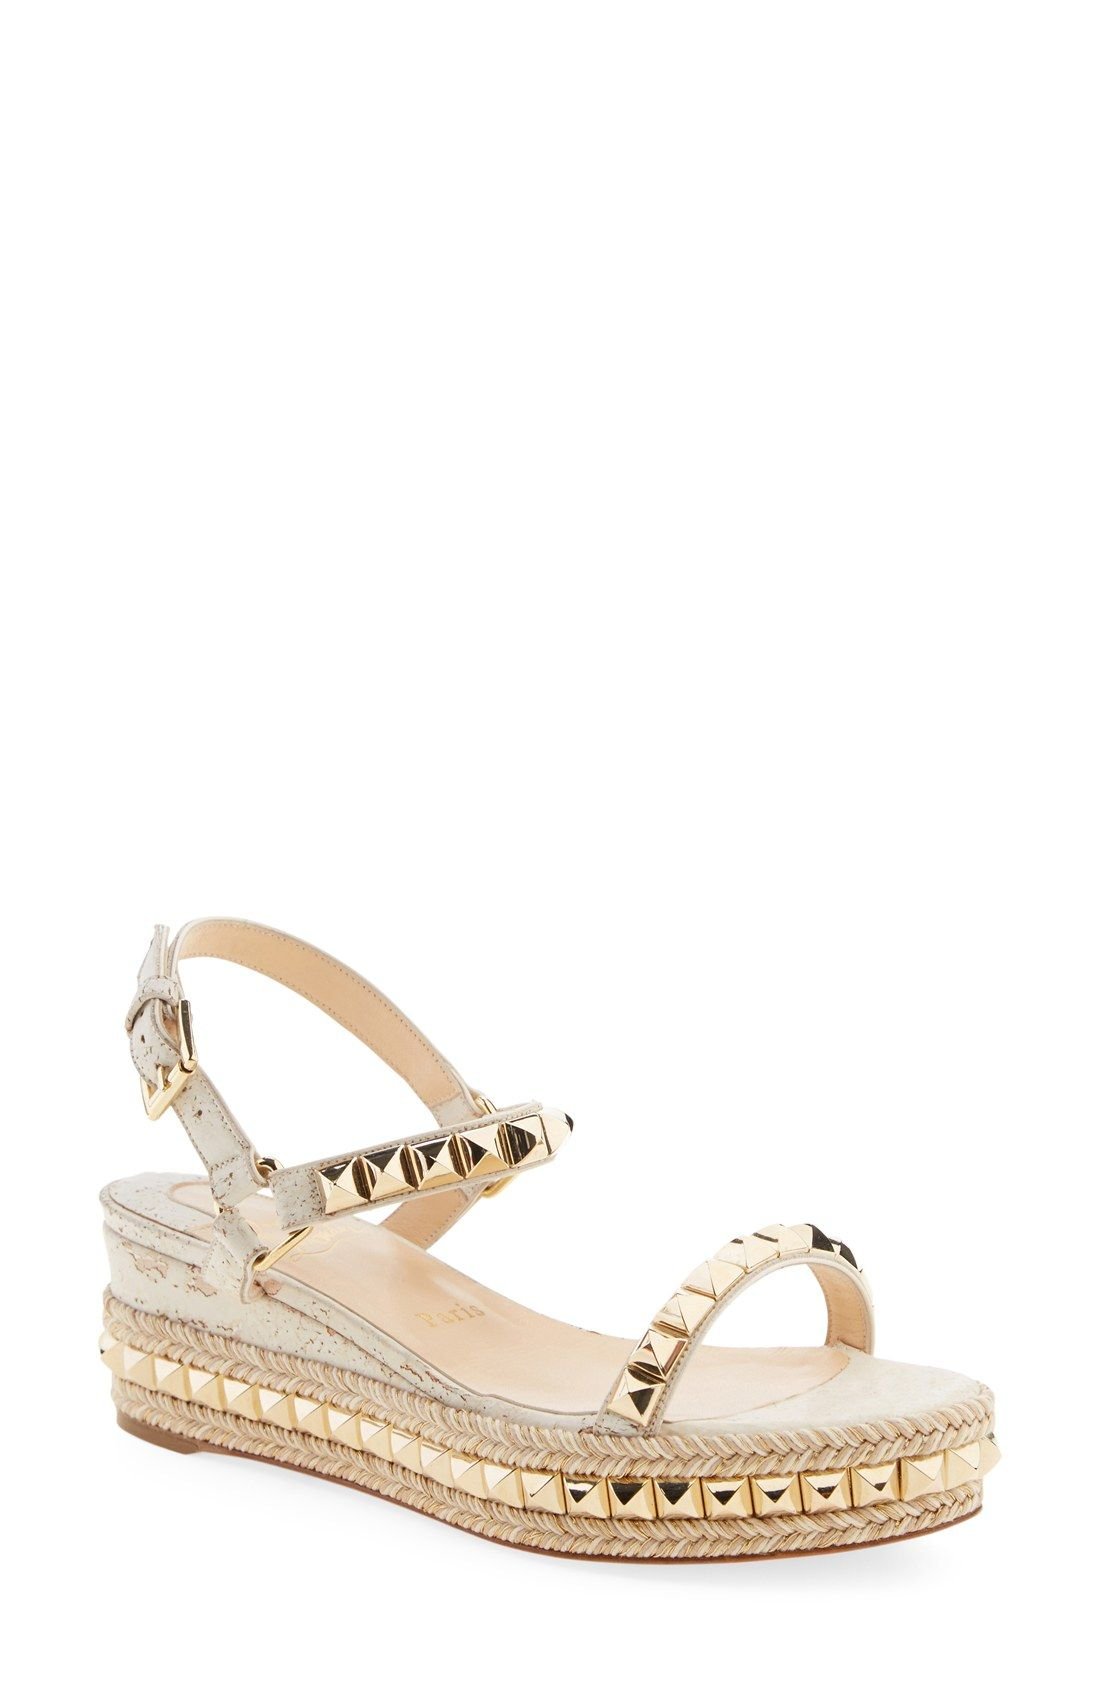 Christian Louboutin Metallic Espadrille Wedge Sandals sale big discount buy cheap wholesale price top quality sale online 6DO4YZEh8